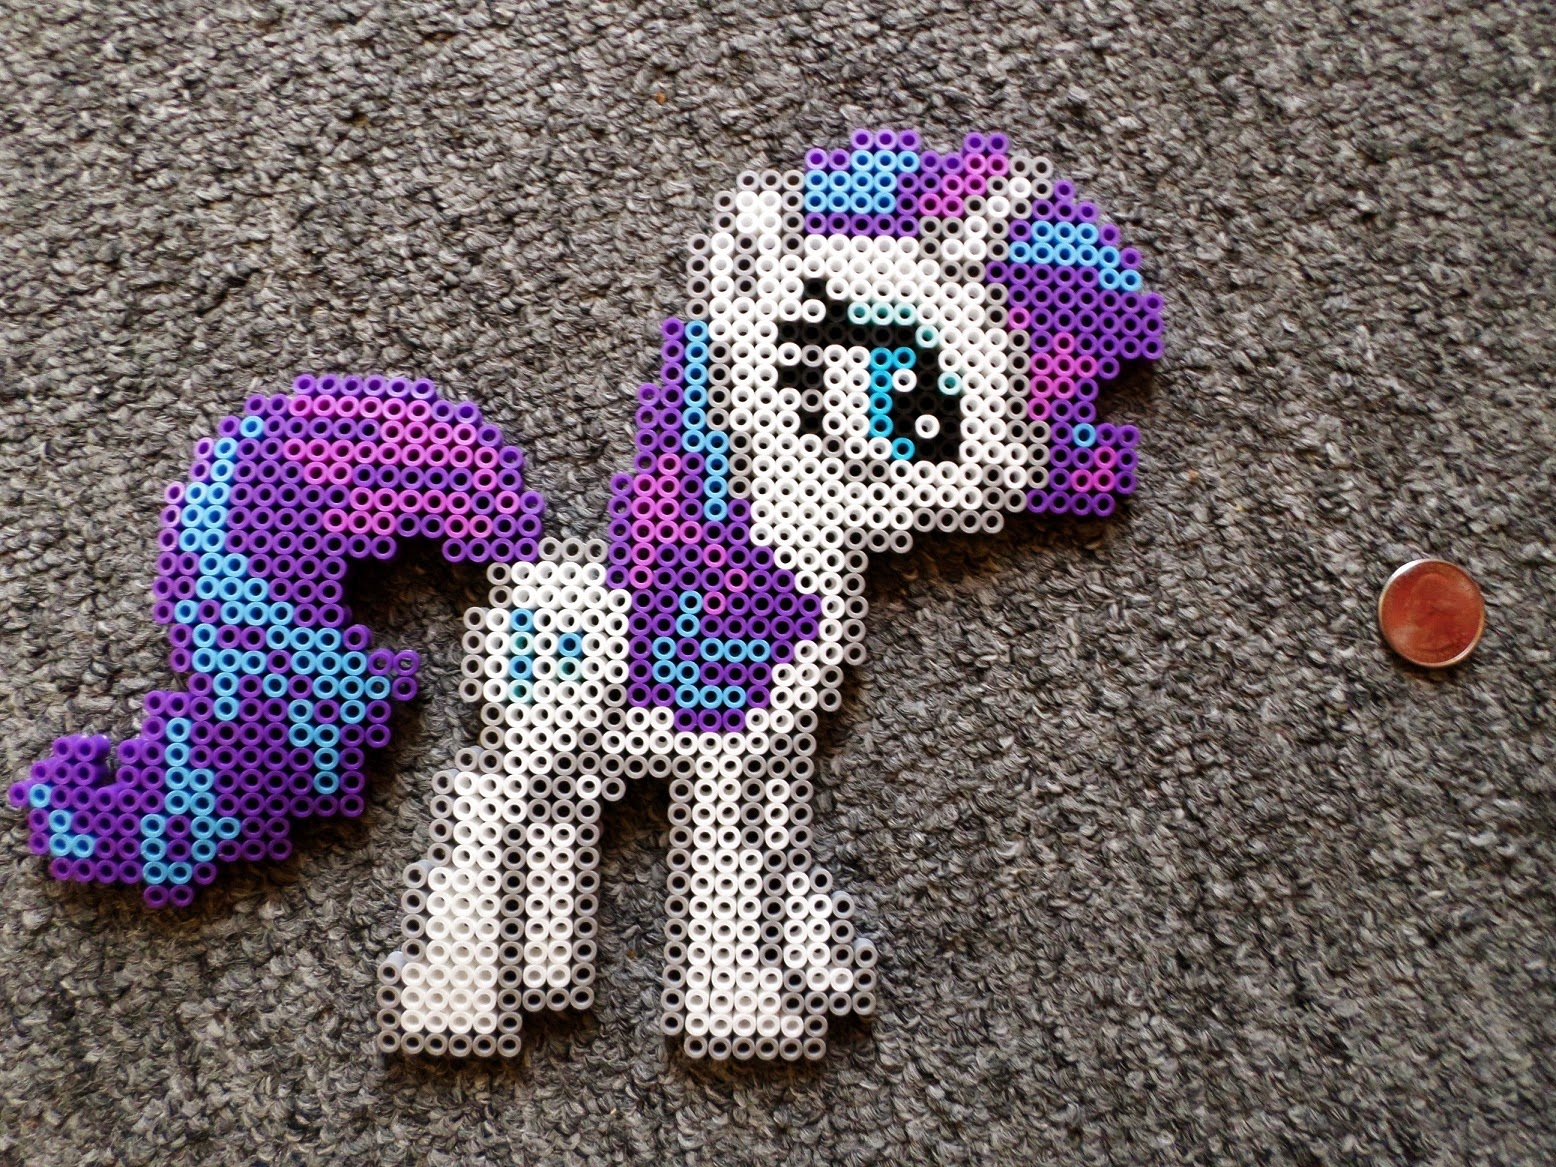 Long Black Fingers My Little Pony Perler Beads